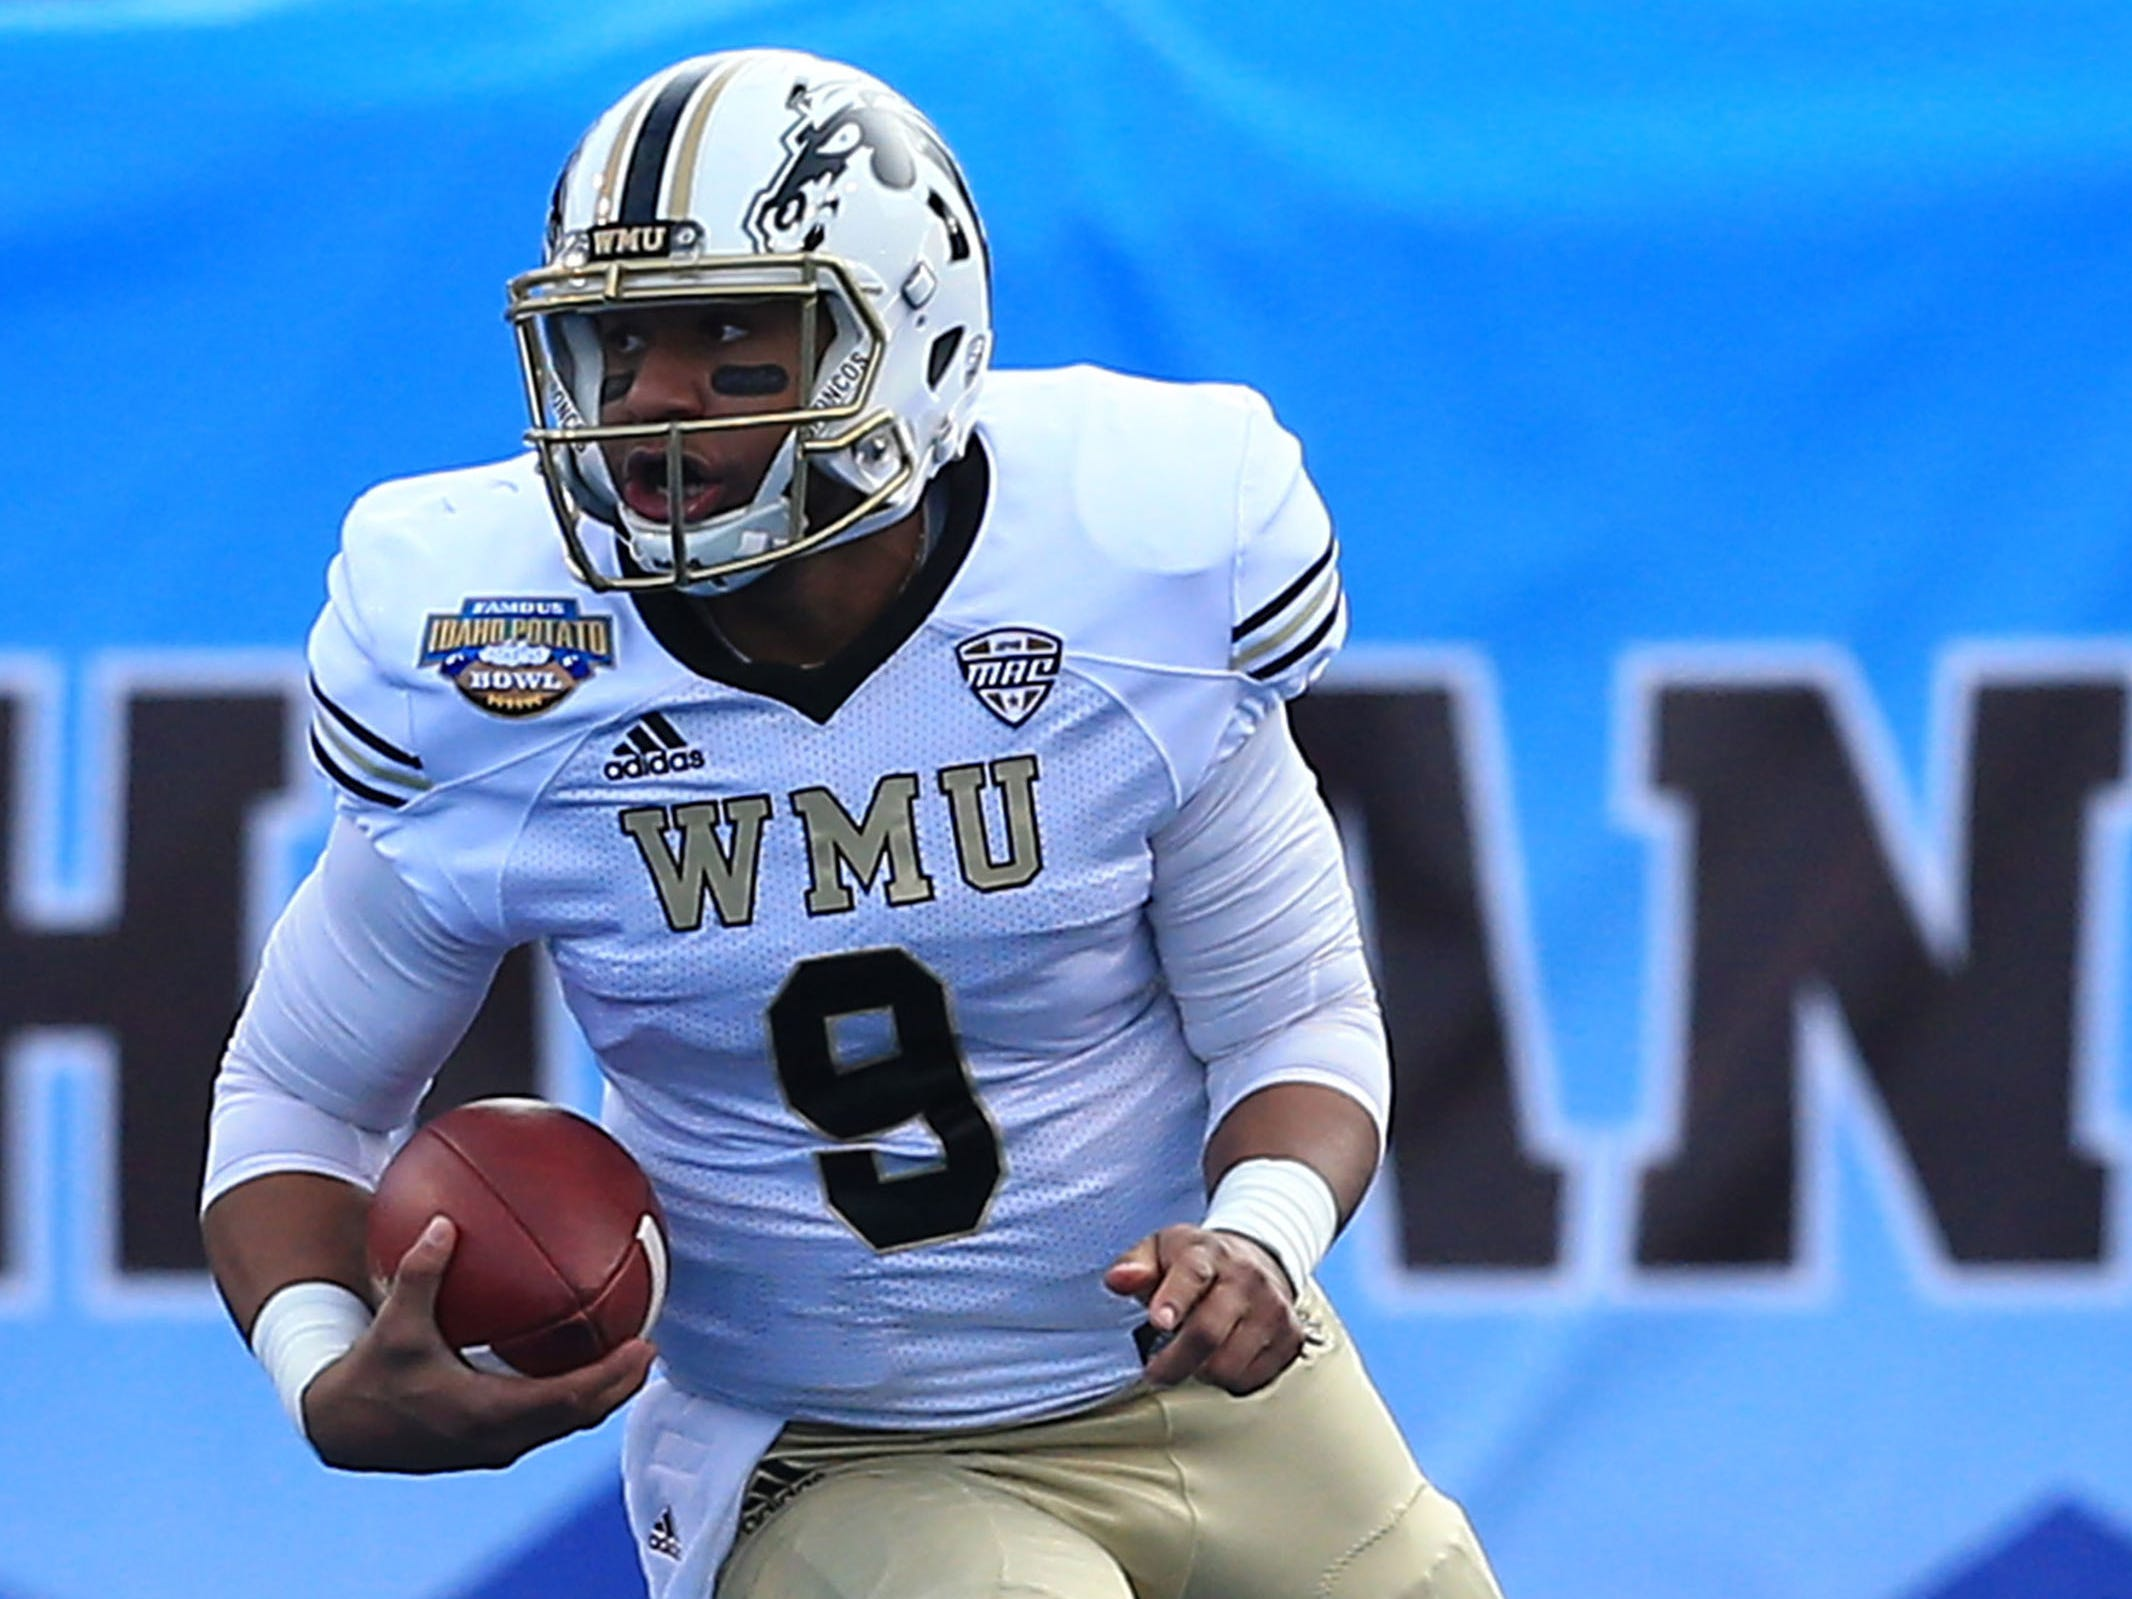 Dec 21, 2018; Boise, ID, United States; Western Michigan Broncos quarterback Kaleb Eleby (9) during the first half against the Brigham Young Cougars during the  2018 Potato Bowl at Albertsons Stadium.